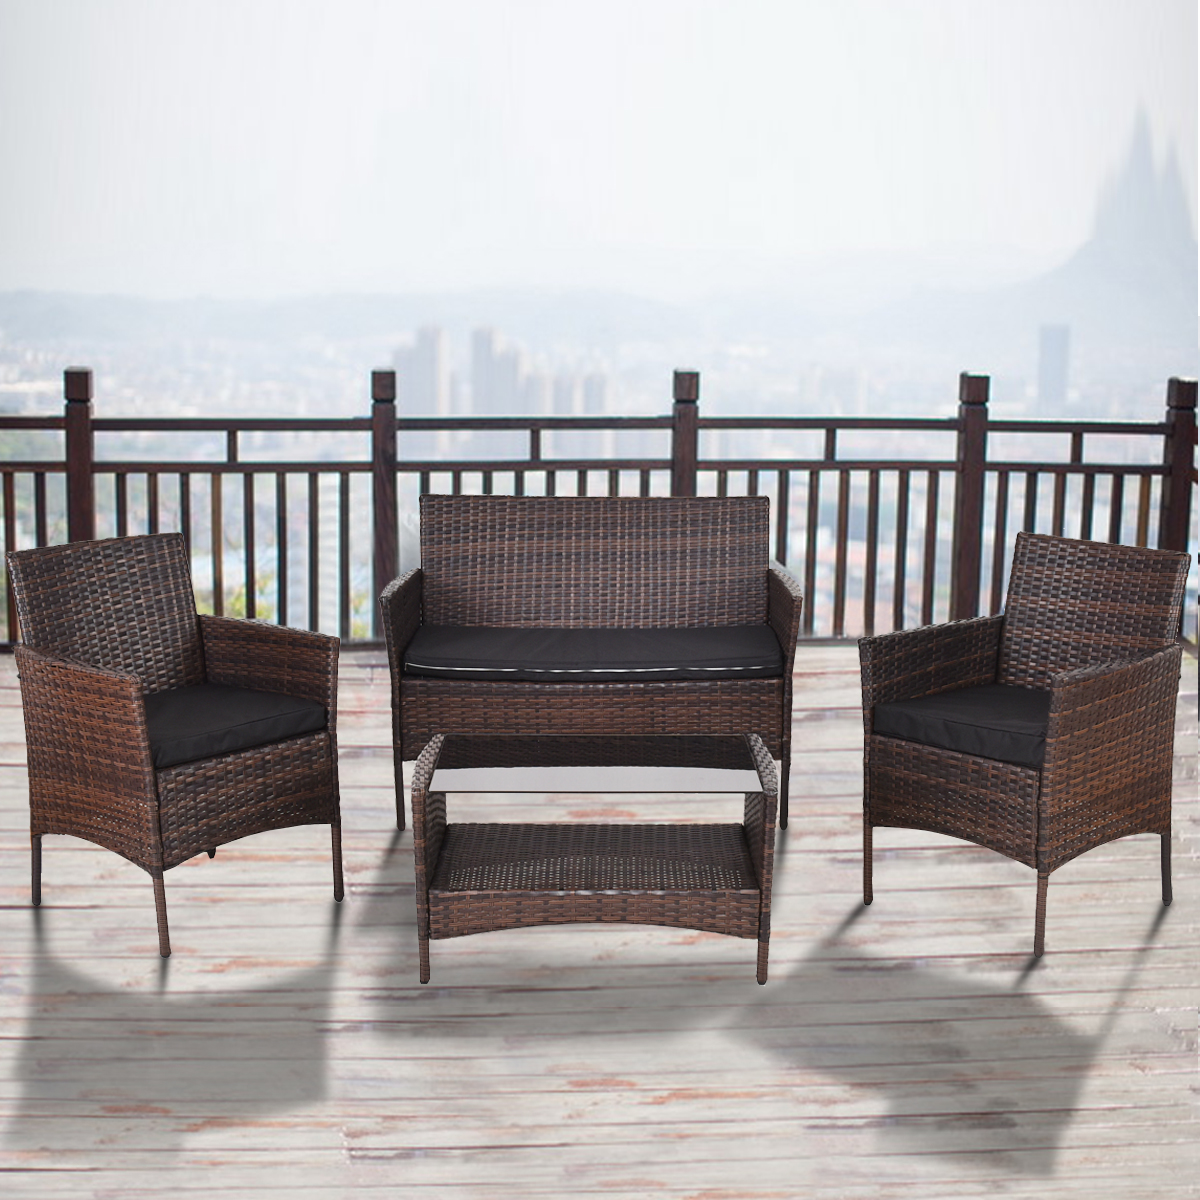 4 PCS Outdoor Patio Rattan Furniture Set Table Shelf Sofa W  Black Cushions New by Supplier Generic